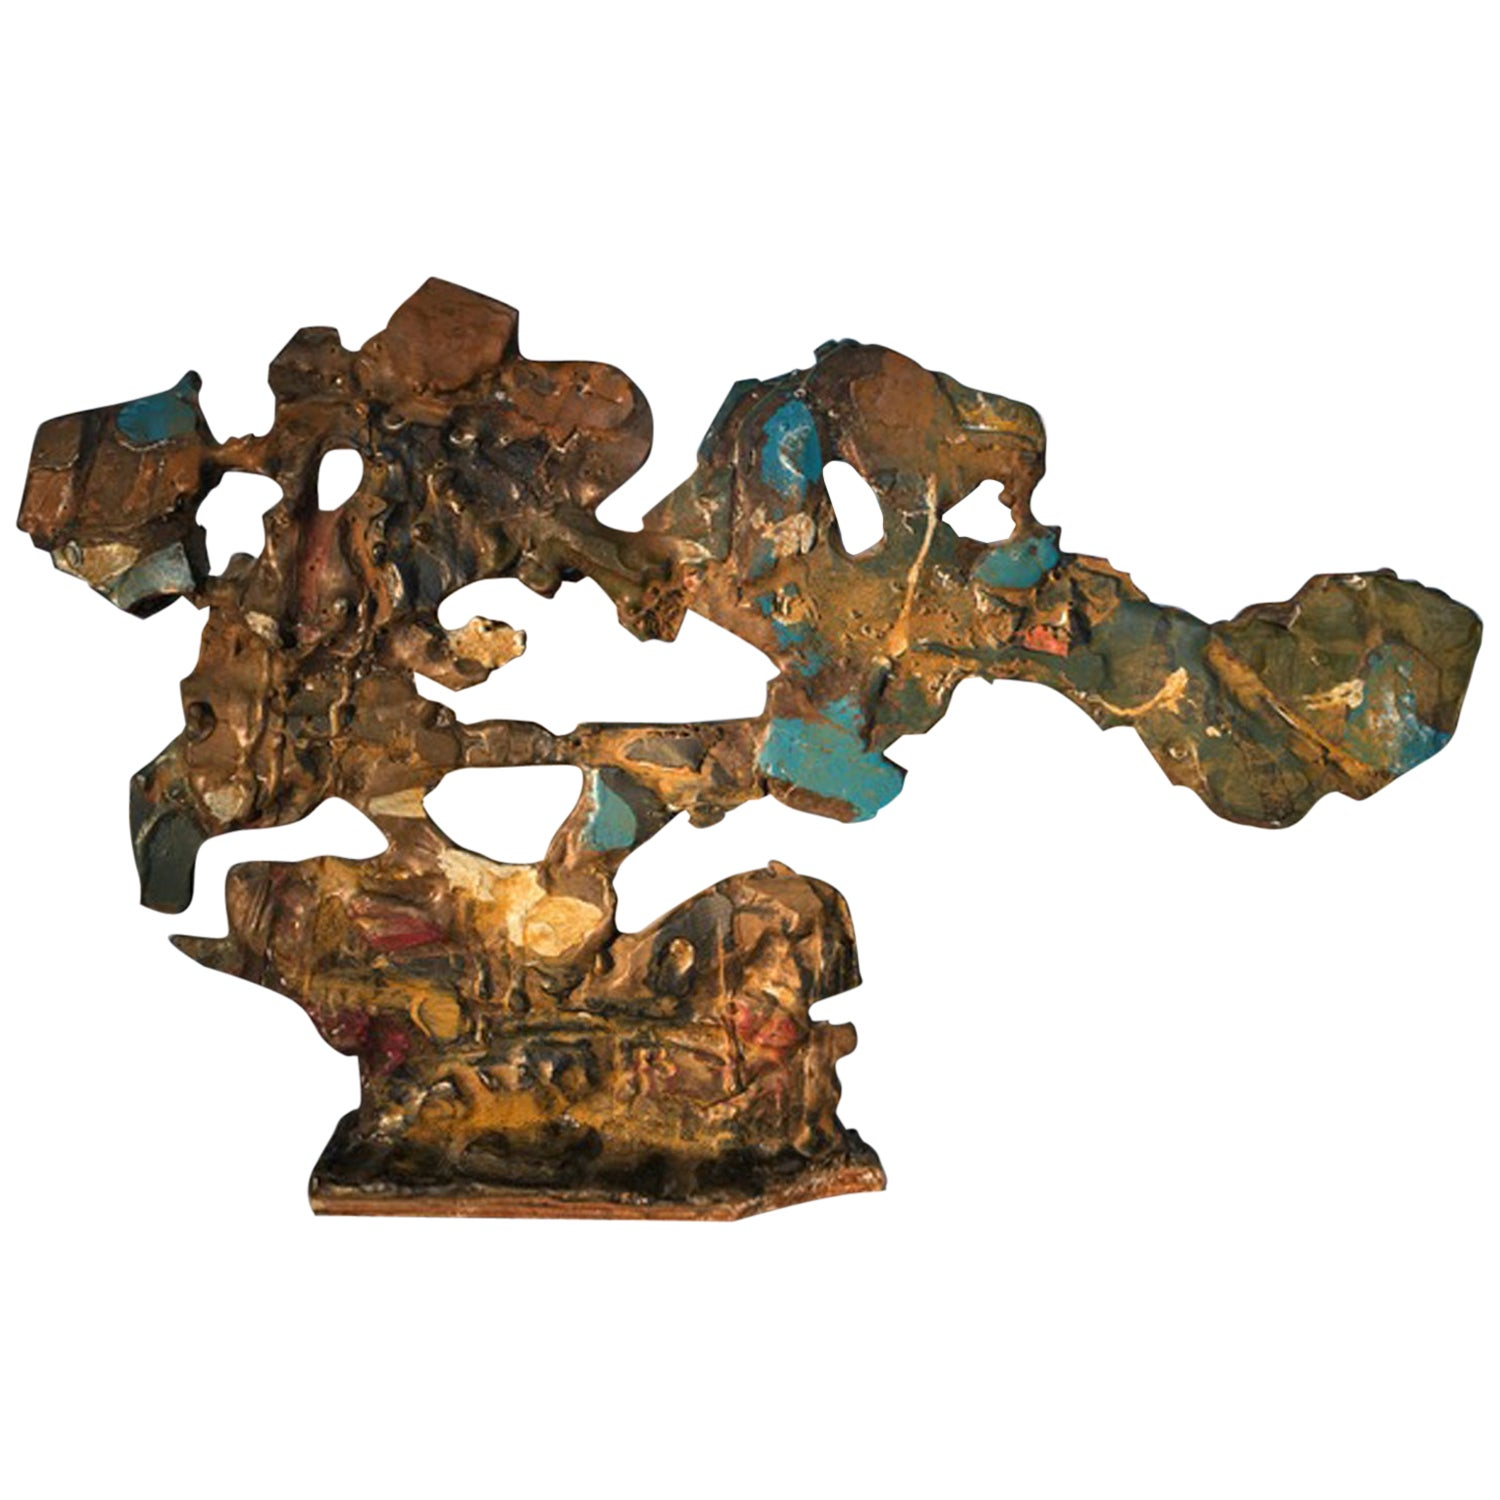 Italy 1985 Postmodern Abstract Bronze Sculpture